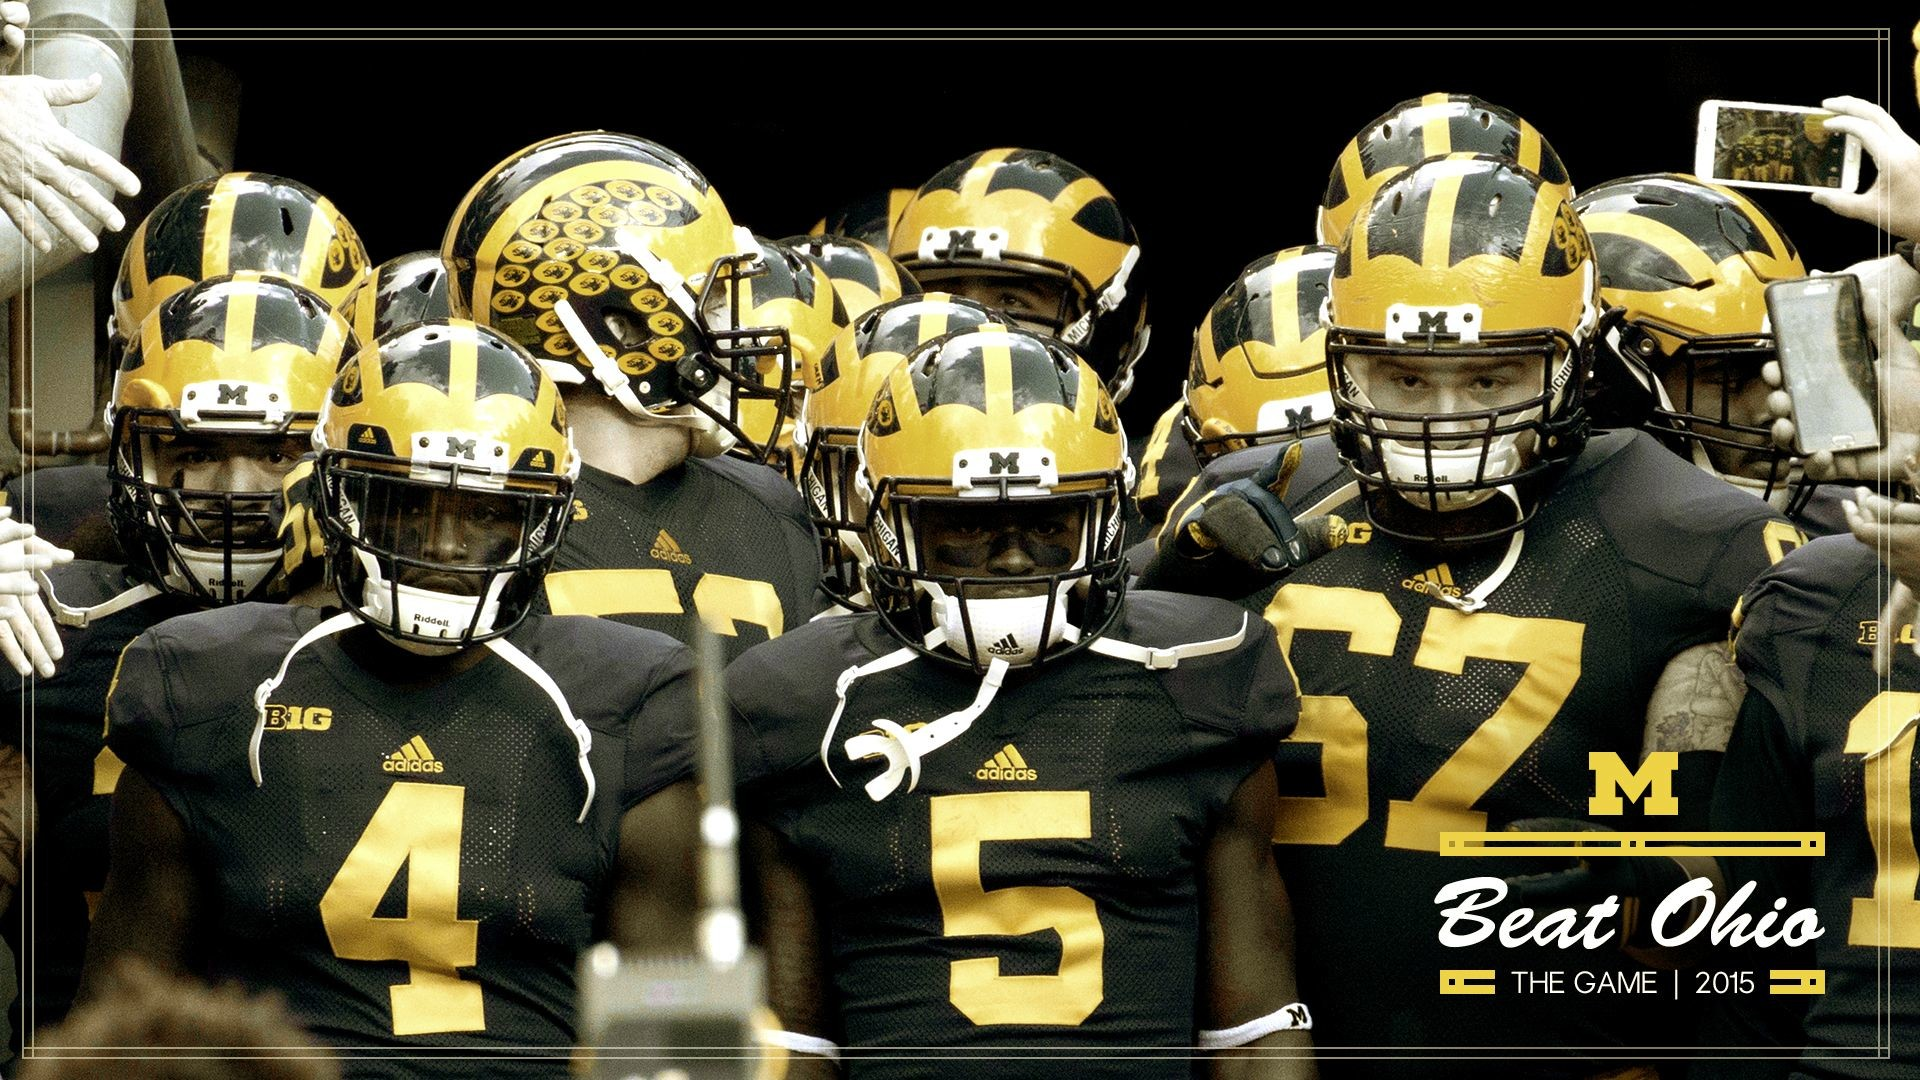 1920x1080 NCAA Football Demo Ohio State Buckeyes vs Michigan 1920×1080 Michigan  Wolverines Football Wallpapers (